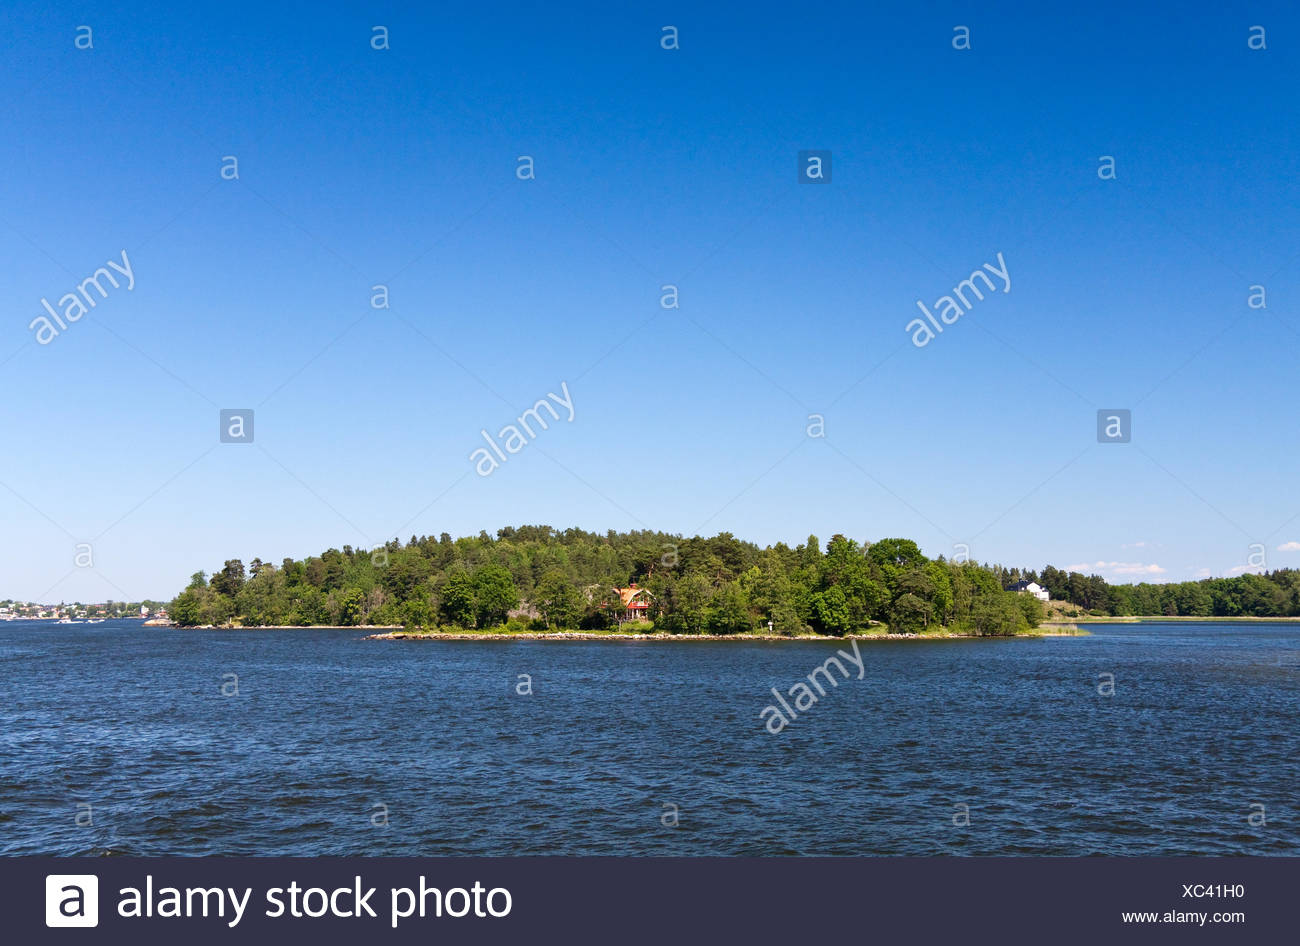 small island in the stockholm archipelago,vaxholm - Stock Image